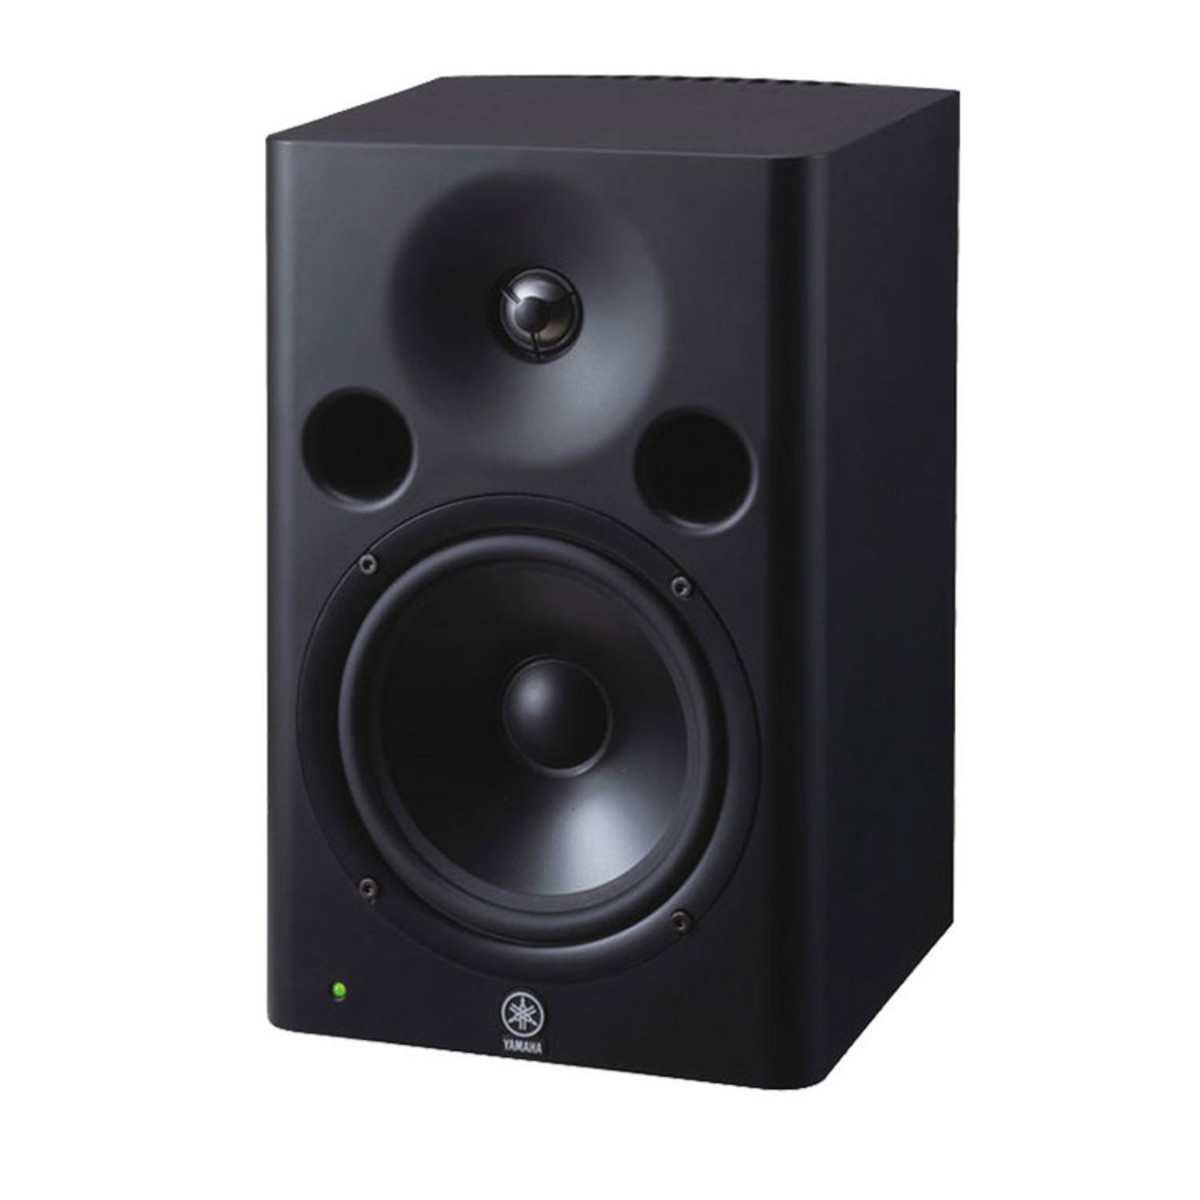 yamaha msp7 studio active monitor at gear4music. Black Bedroom Furniture Sets. Home Design Ideas